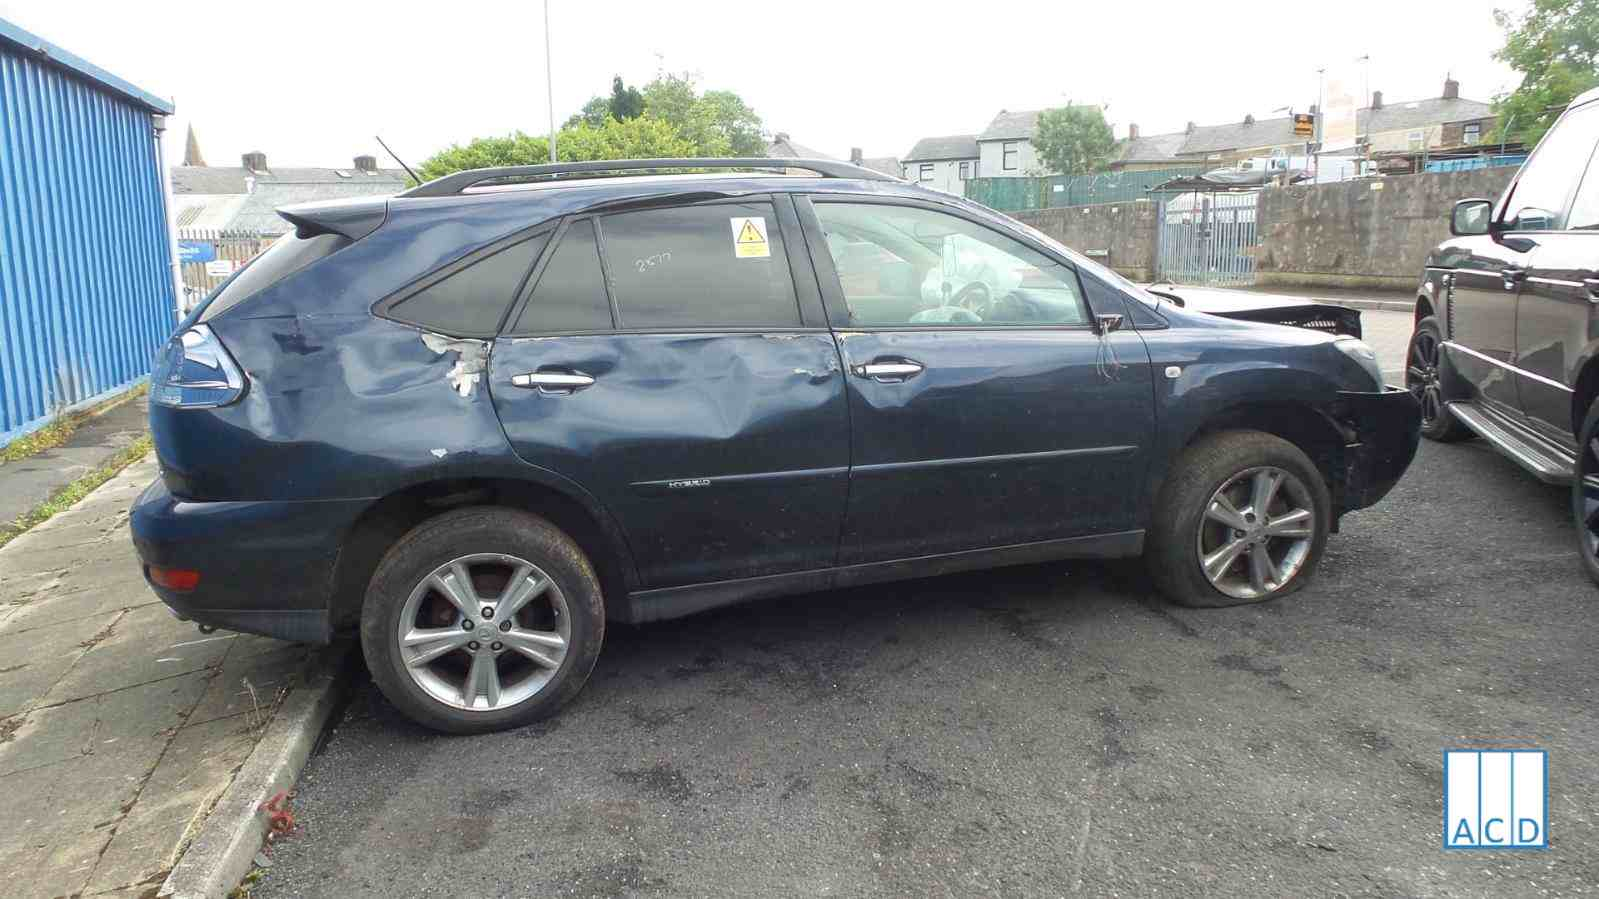 Lexus RX400 H SE 3.3L Hybrid 1-Speed Automatic 2007 #2877 01